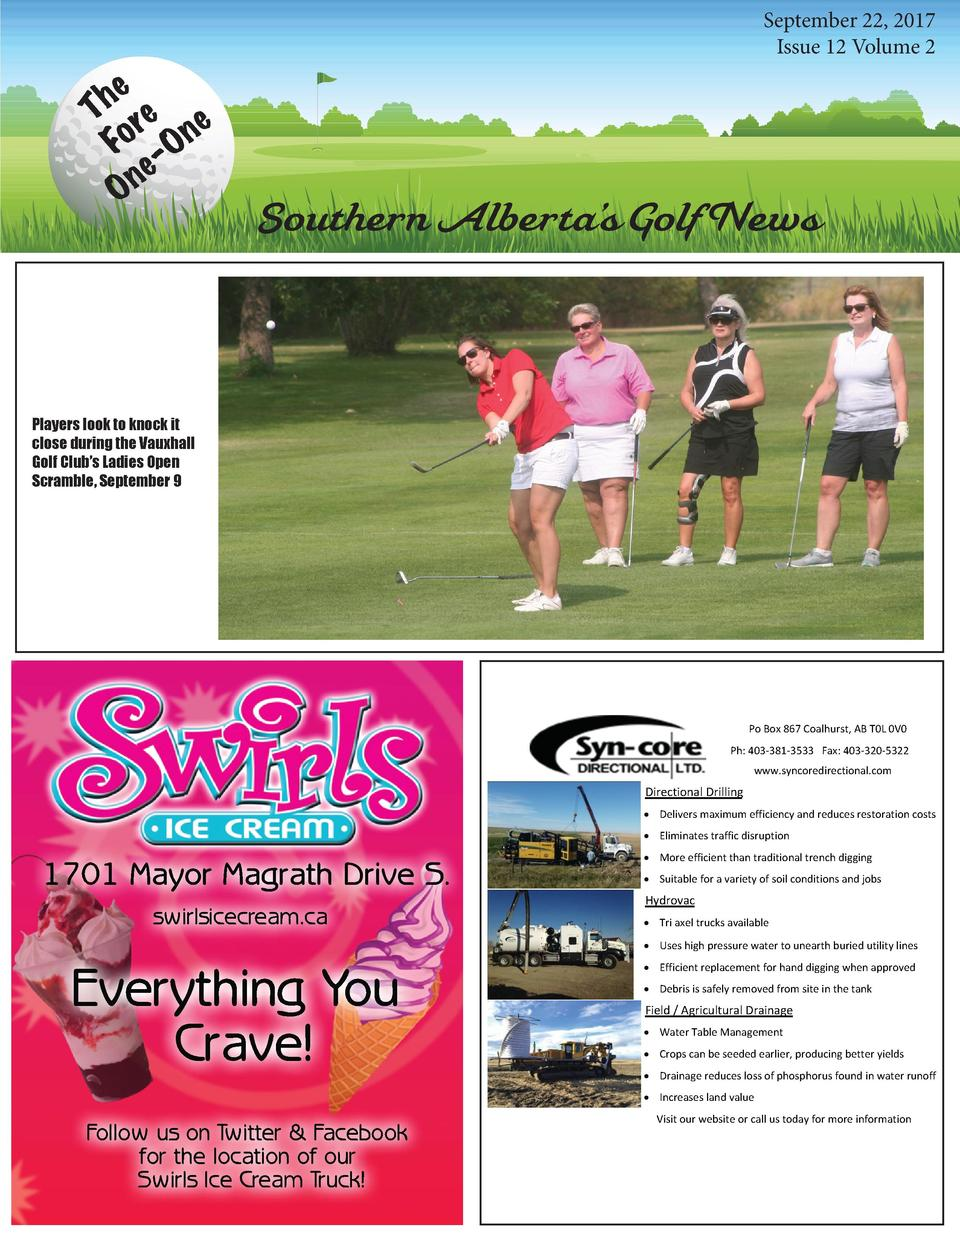 e h T re e Fo -On e n O  September 22, 2017 Issue 12 Volume 2  Southern Alberta   s Golf News  Players look to knock it cl...